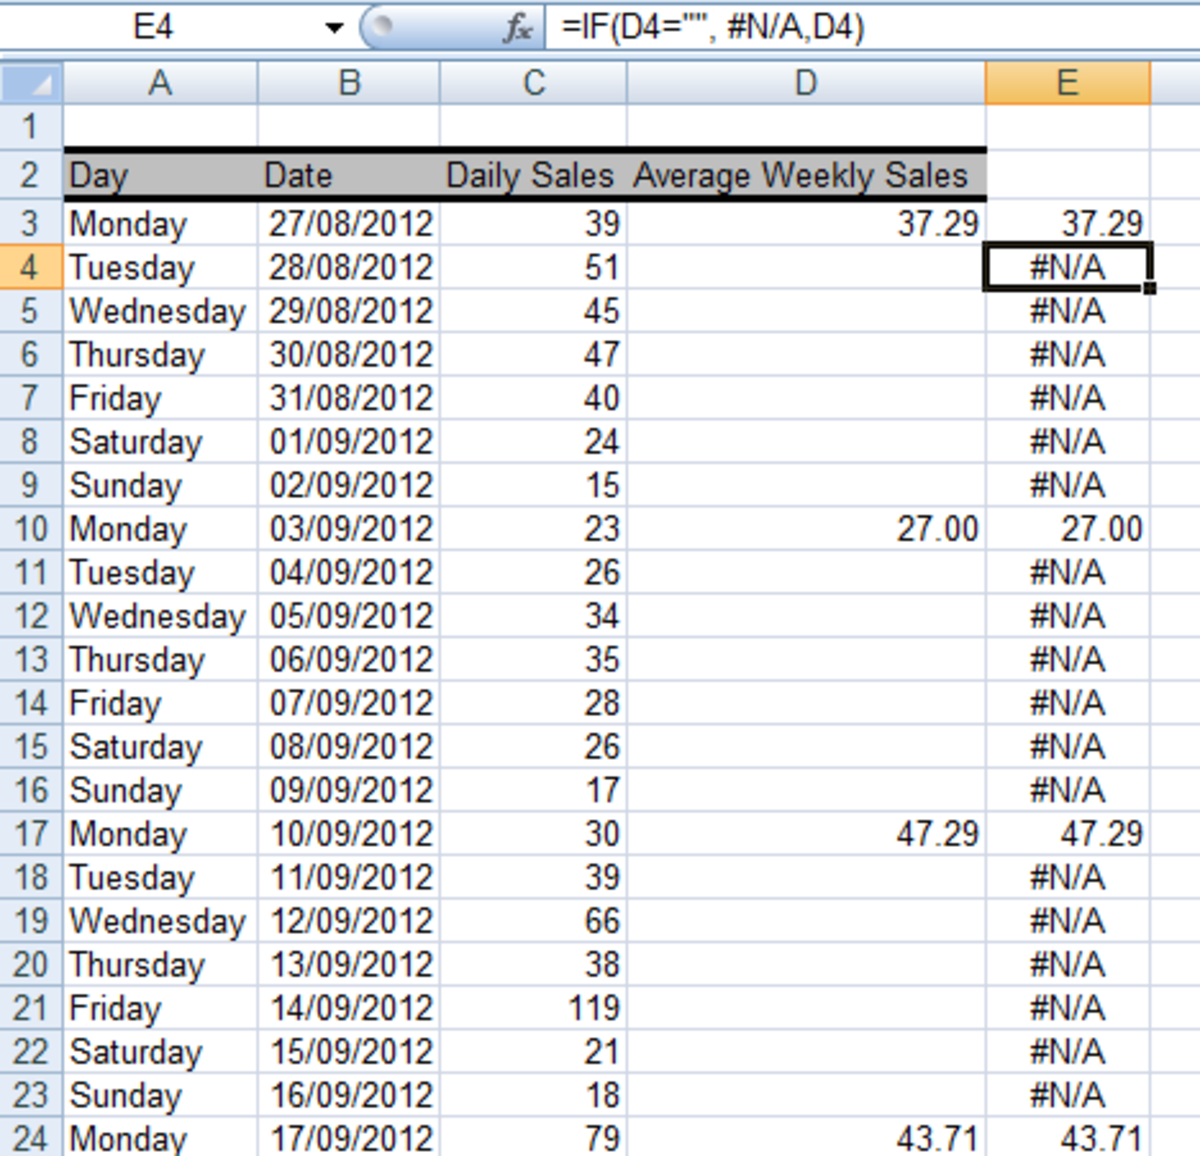 Using the IF function in a formula to convert empty cells to #N/A in Excel 2007 and Excel 2010.